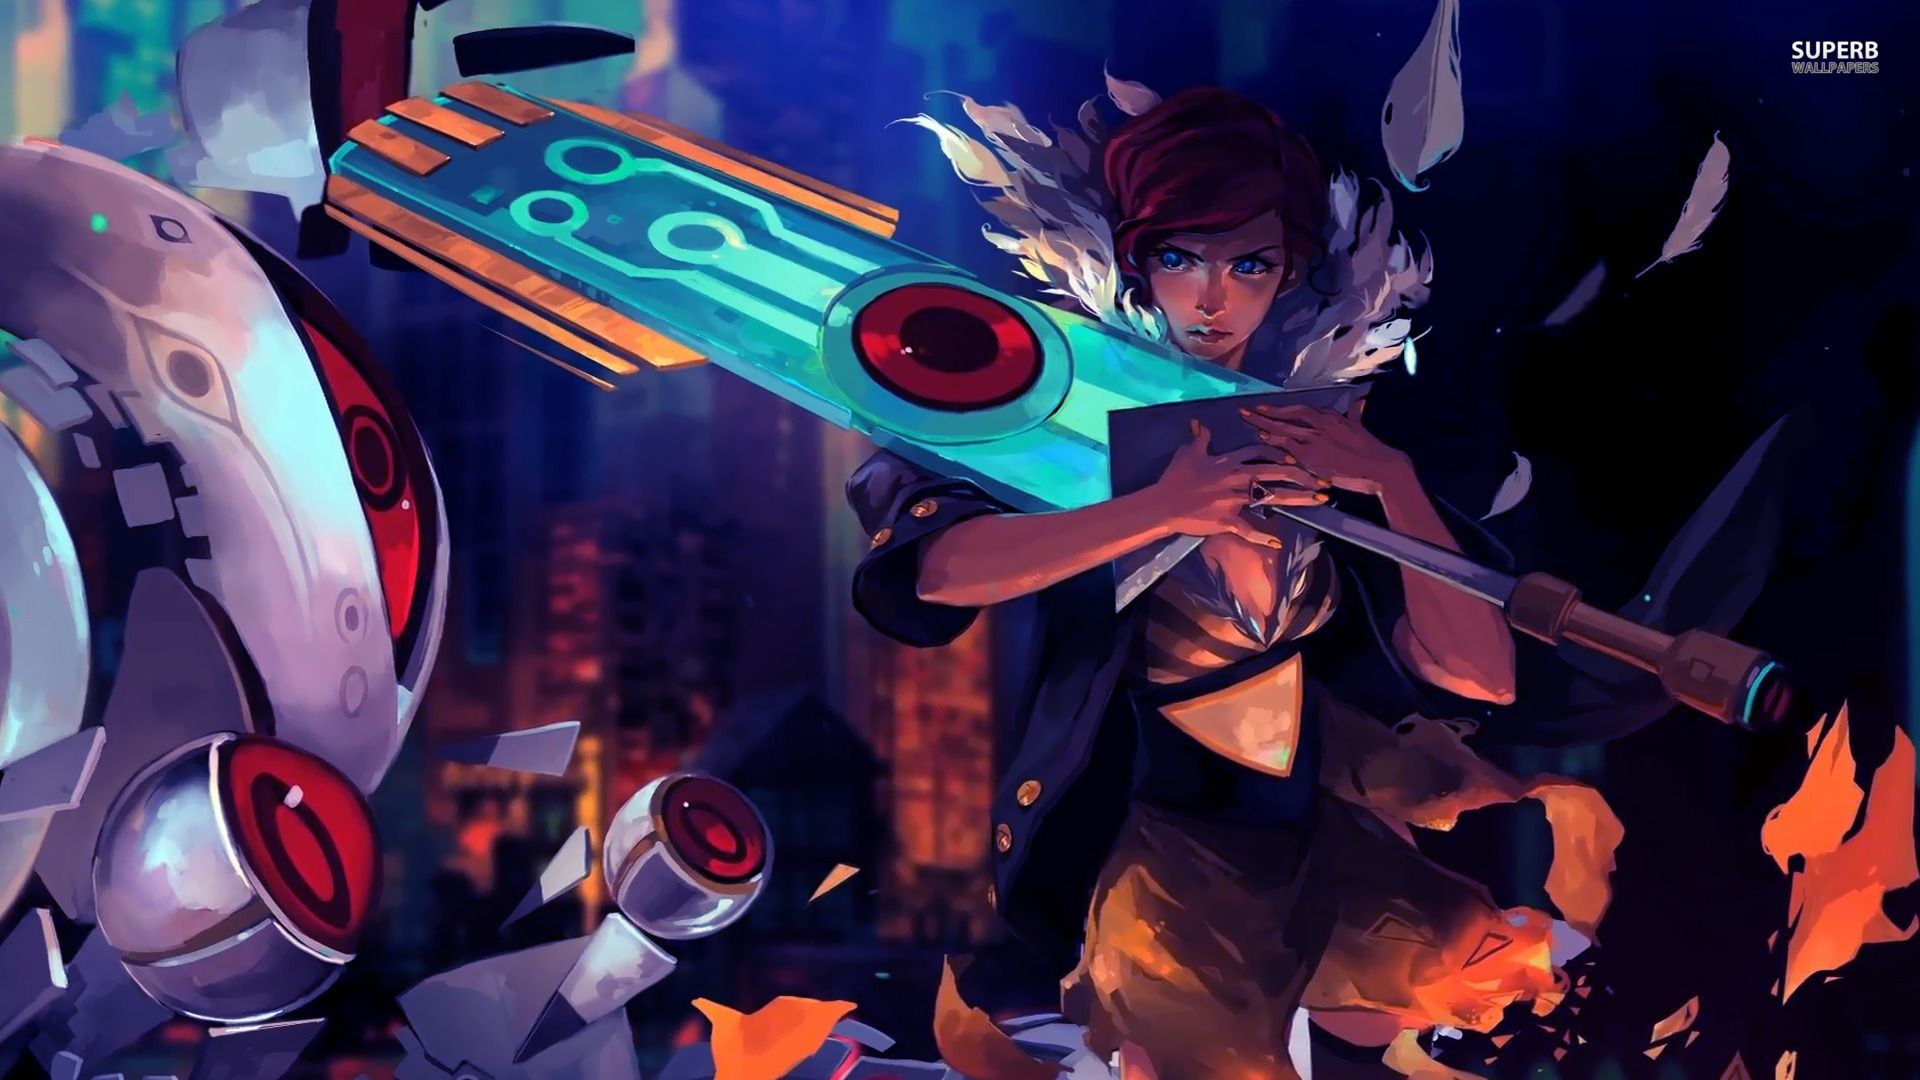 Transistor Game Anime C Wallpaper 1920x1080 169828 Wallpaperup Arte